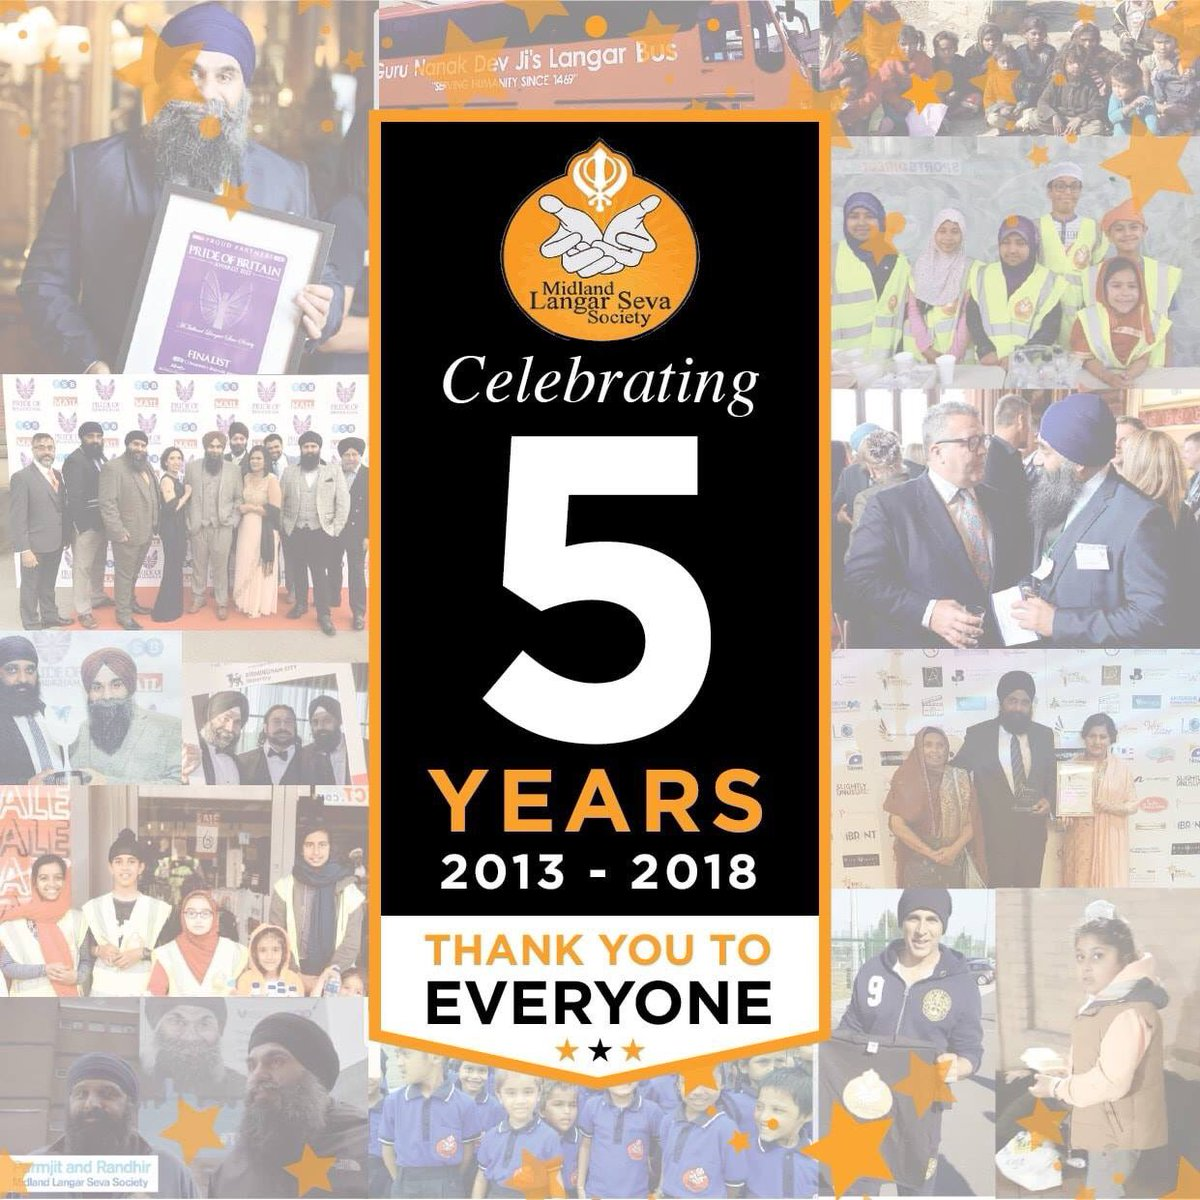 21,104 meals were served in total last week #celebrations #happy5yearanniversary